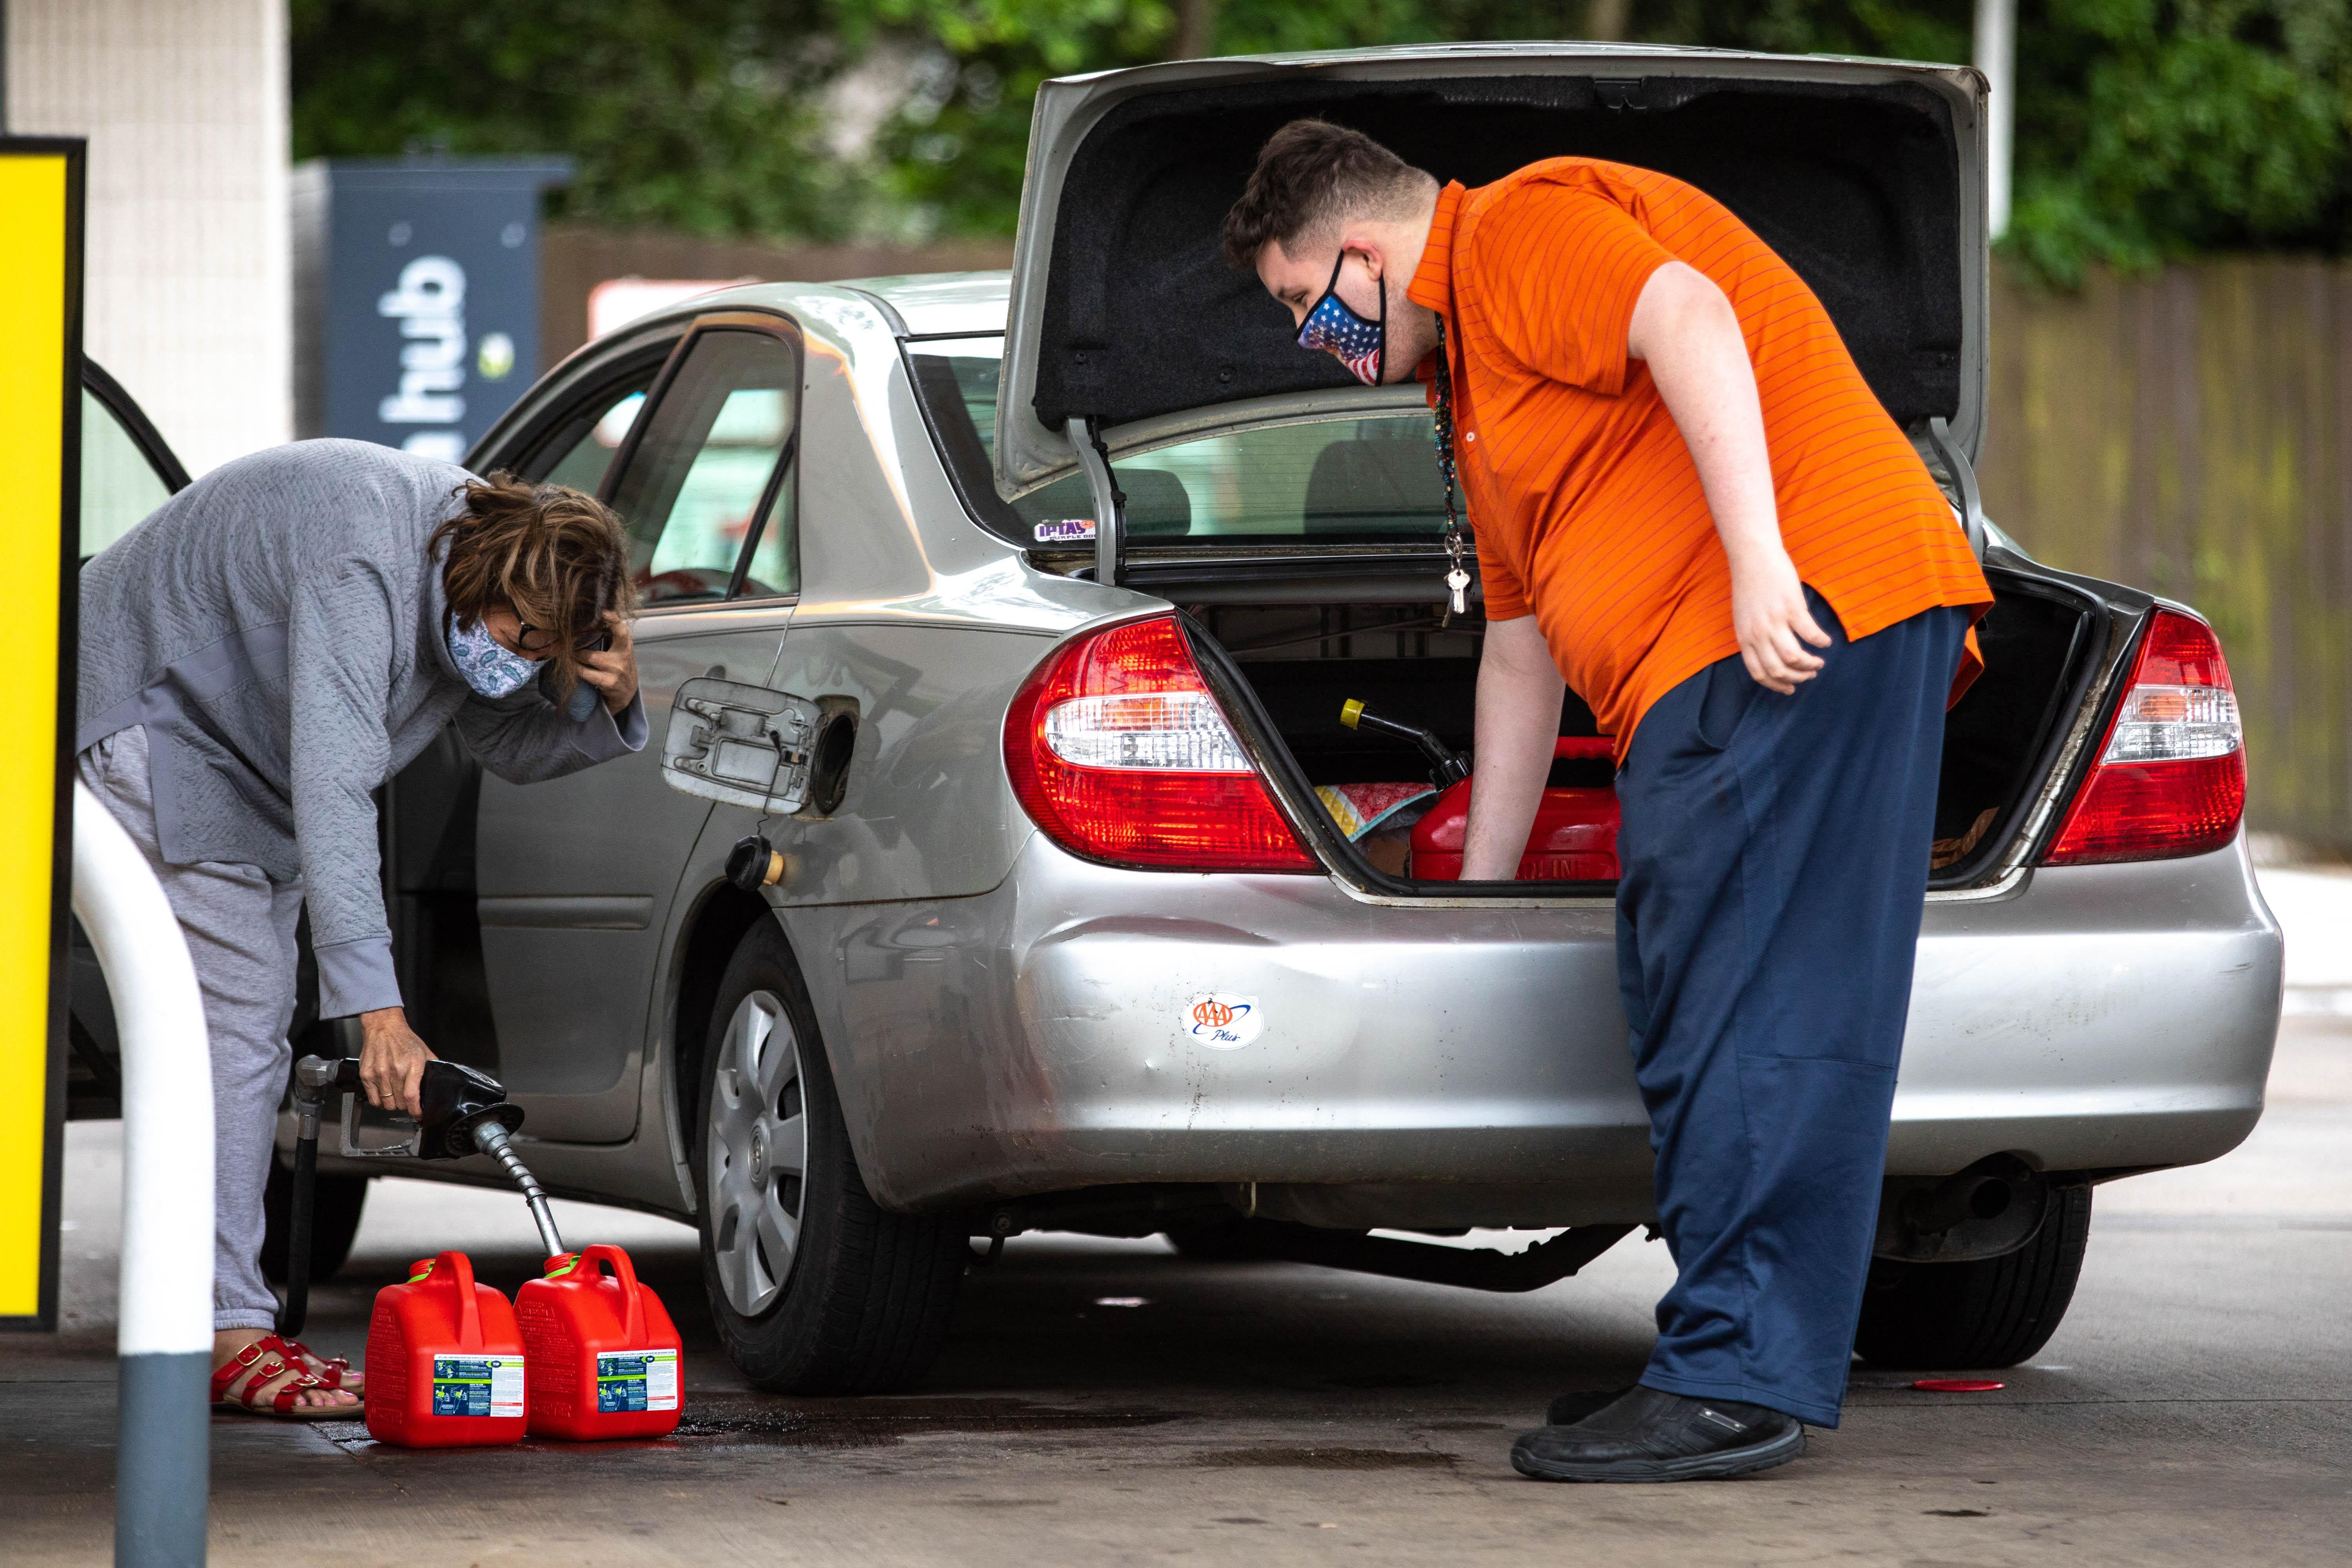 Motorists fill up gas cans at a Shell station in Charlotte, North Carolina on May 12, 2021.